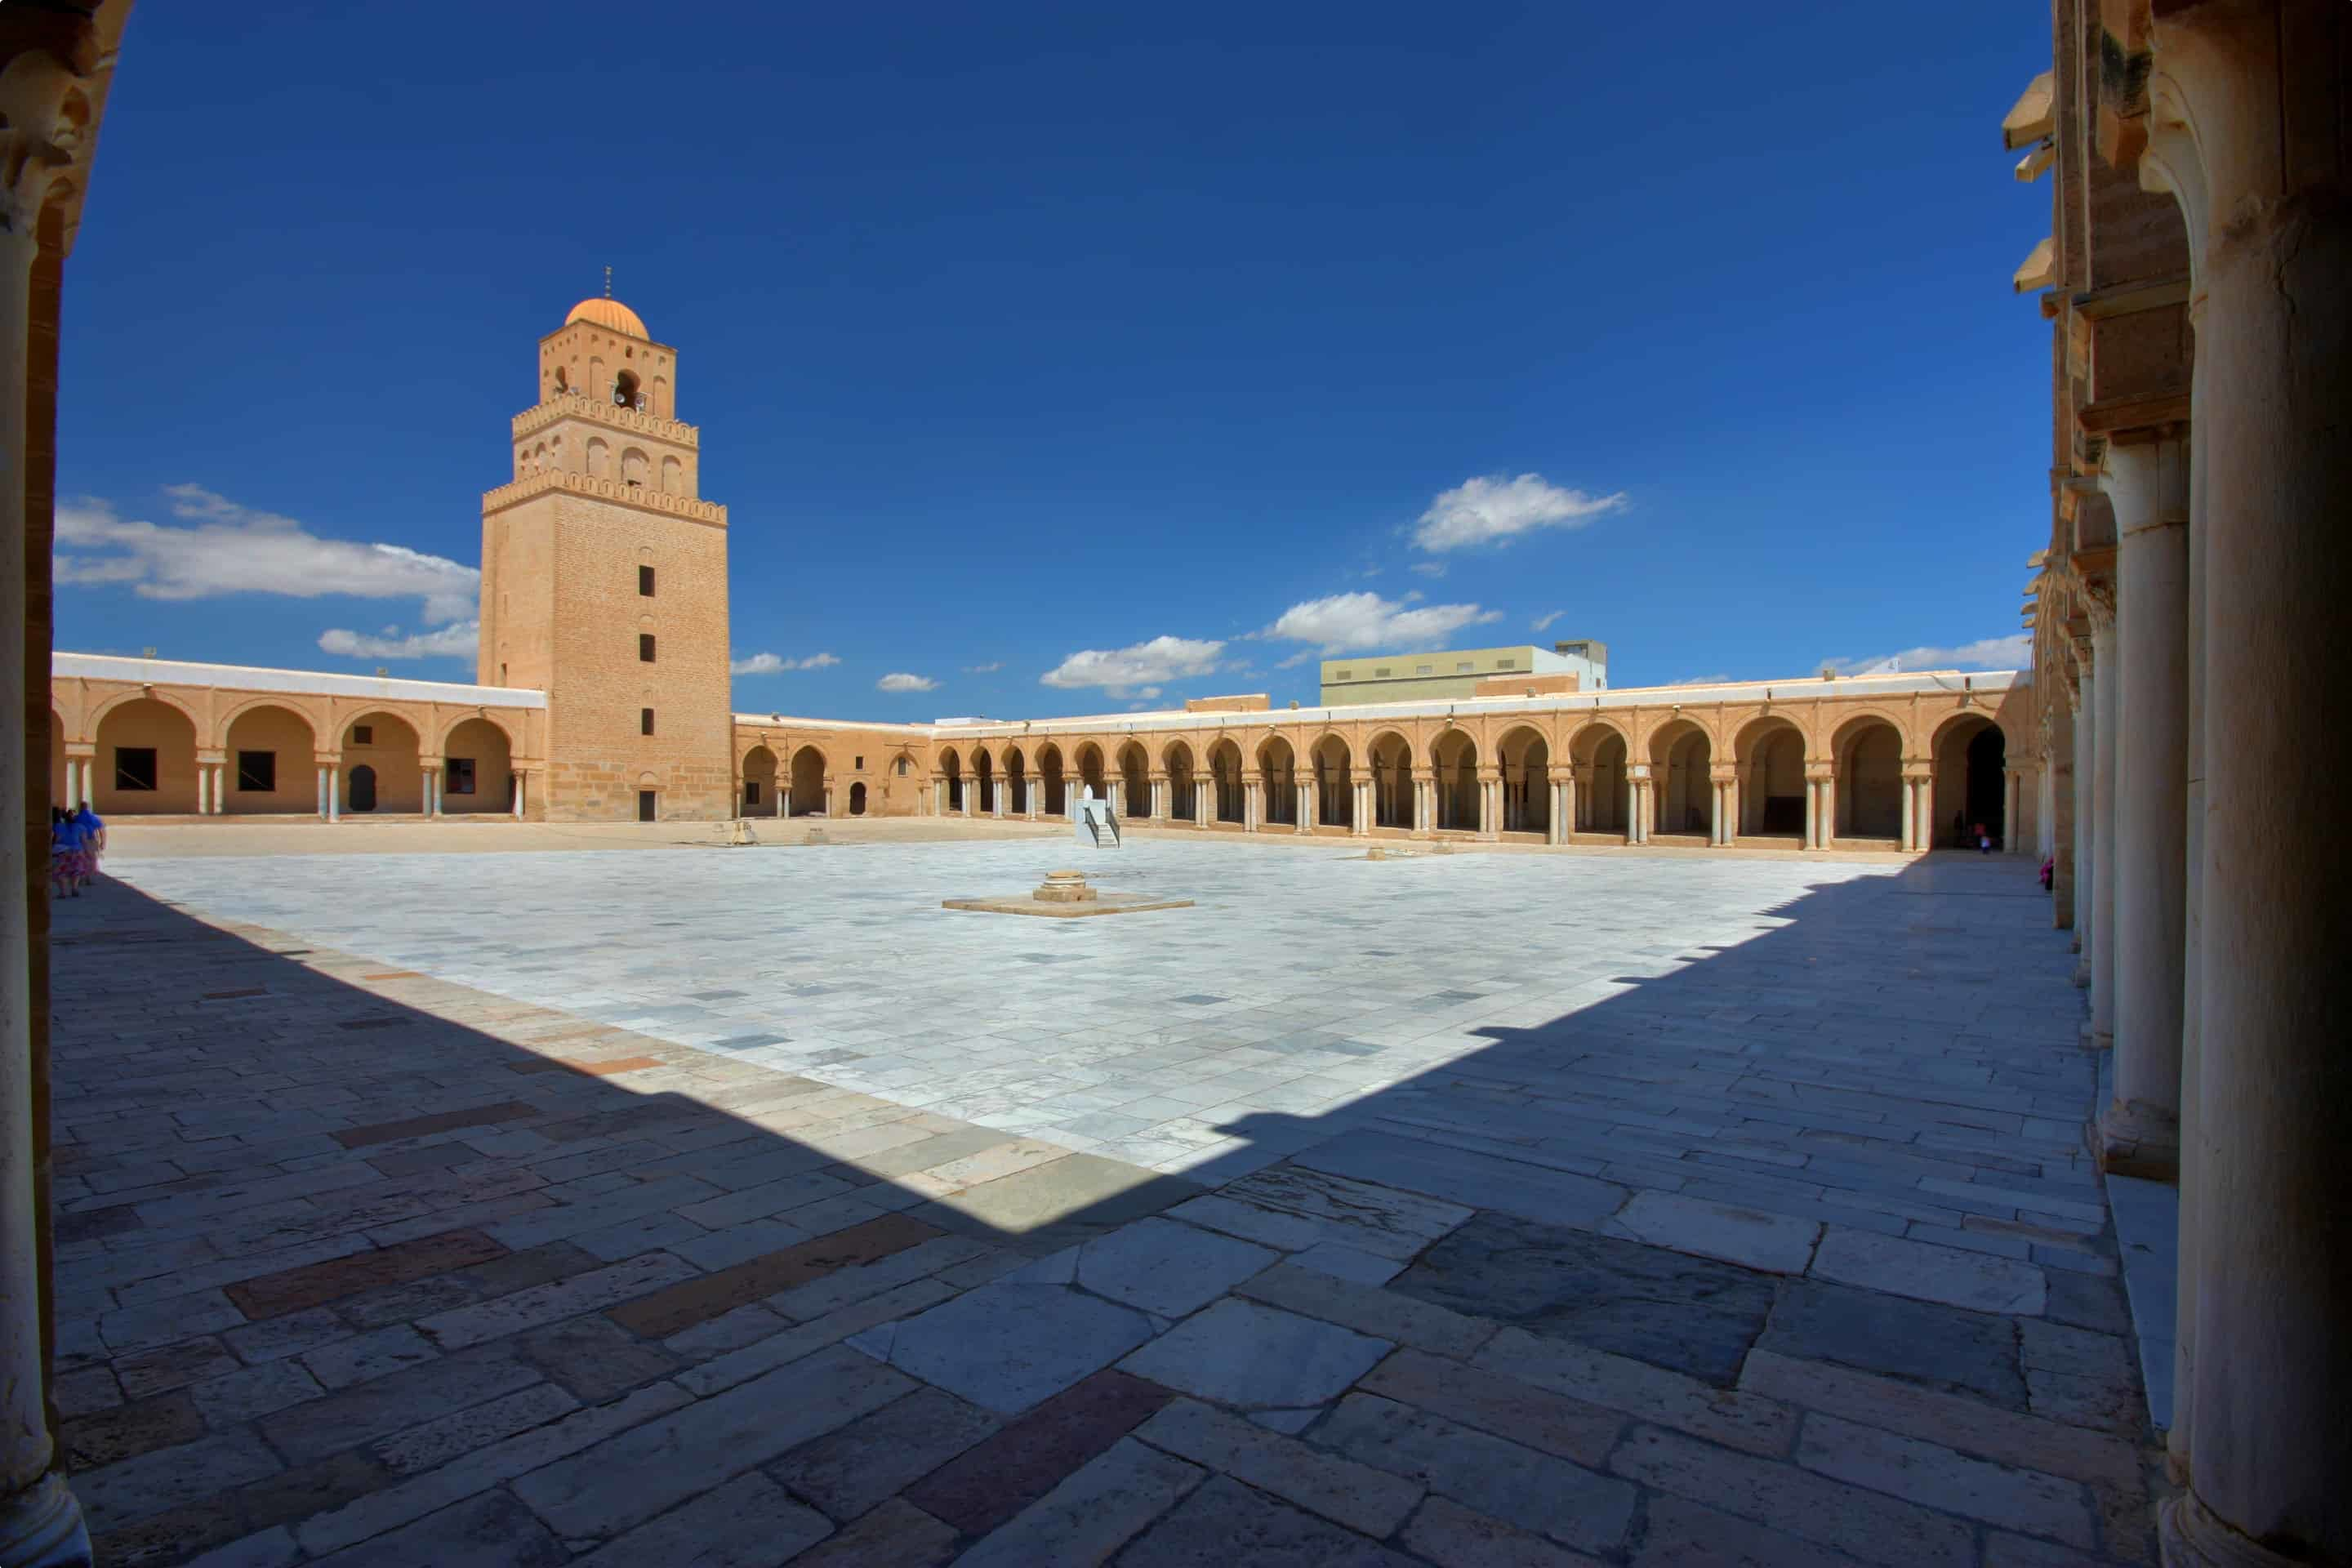 Overview_of_the_courtyard_of_the_Great_Mosque_of_Kairouan